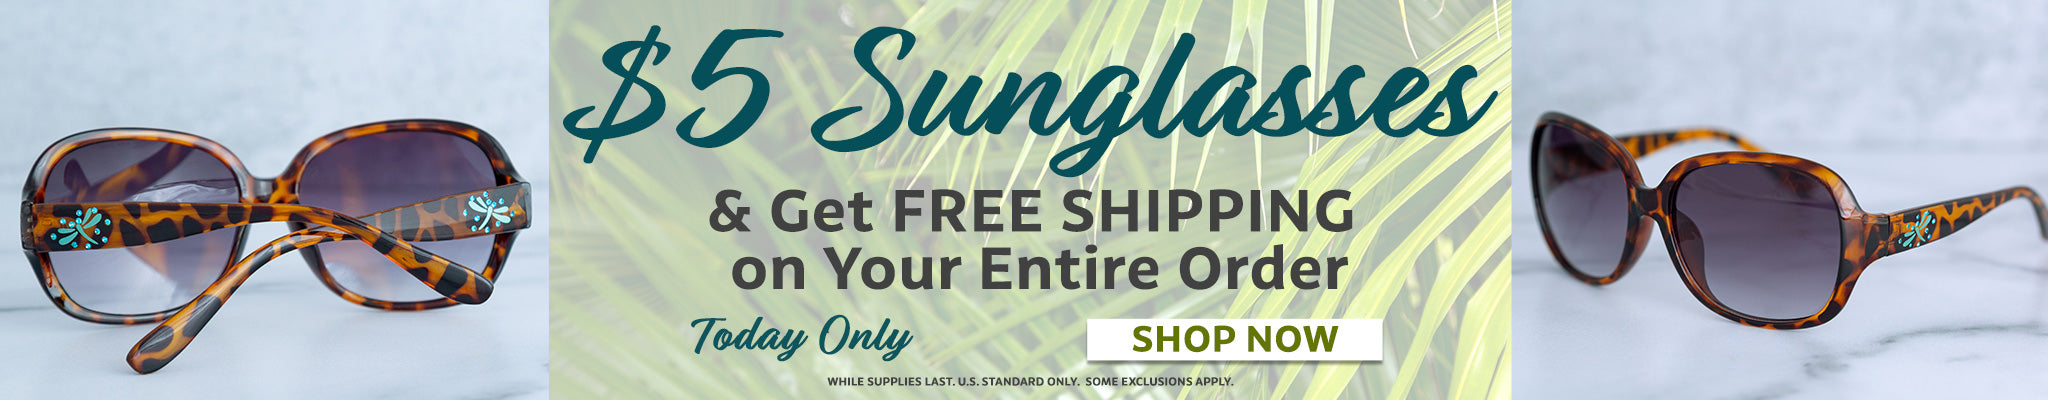 $5 Sunglasses   Get Free Shipping On Your Entire Order!